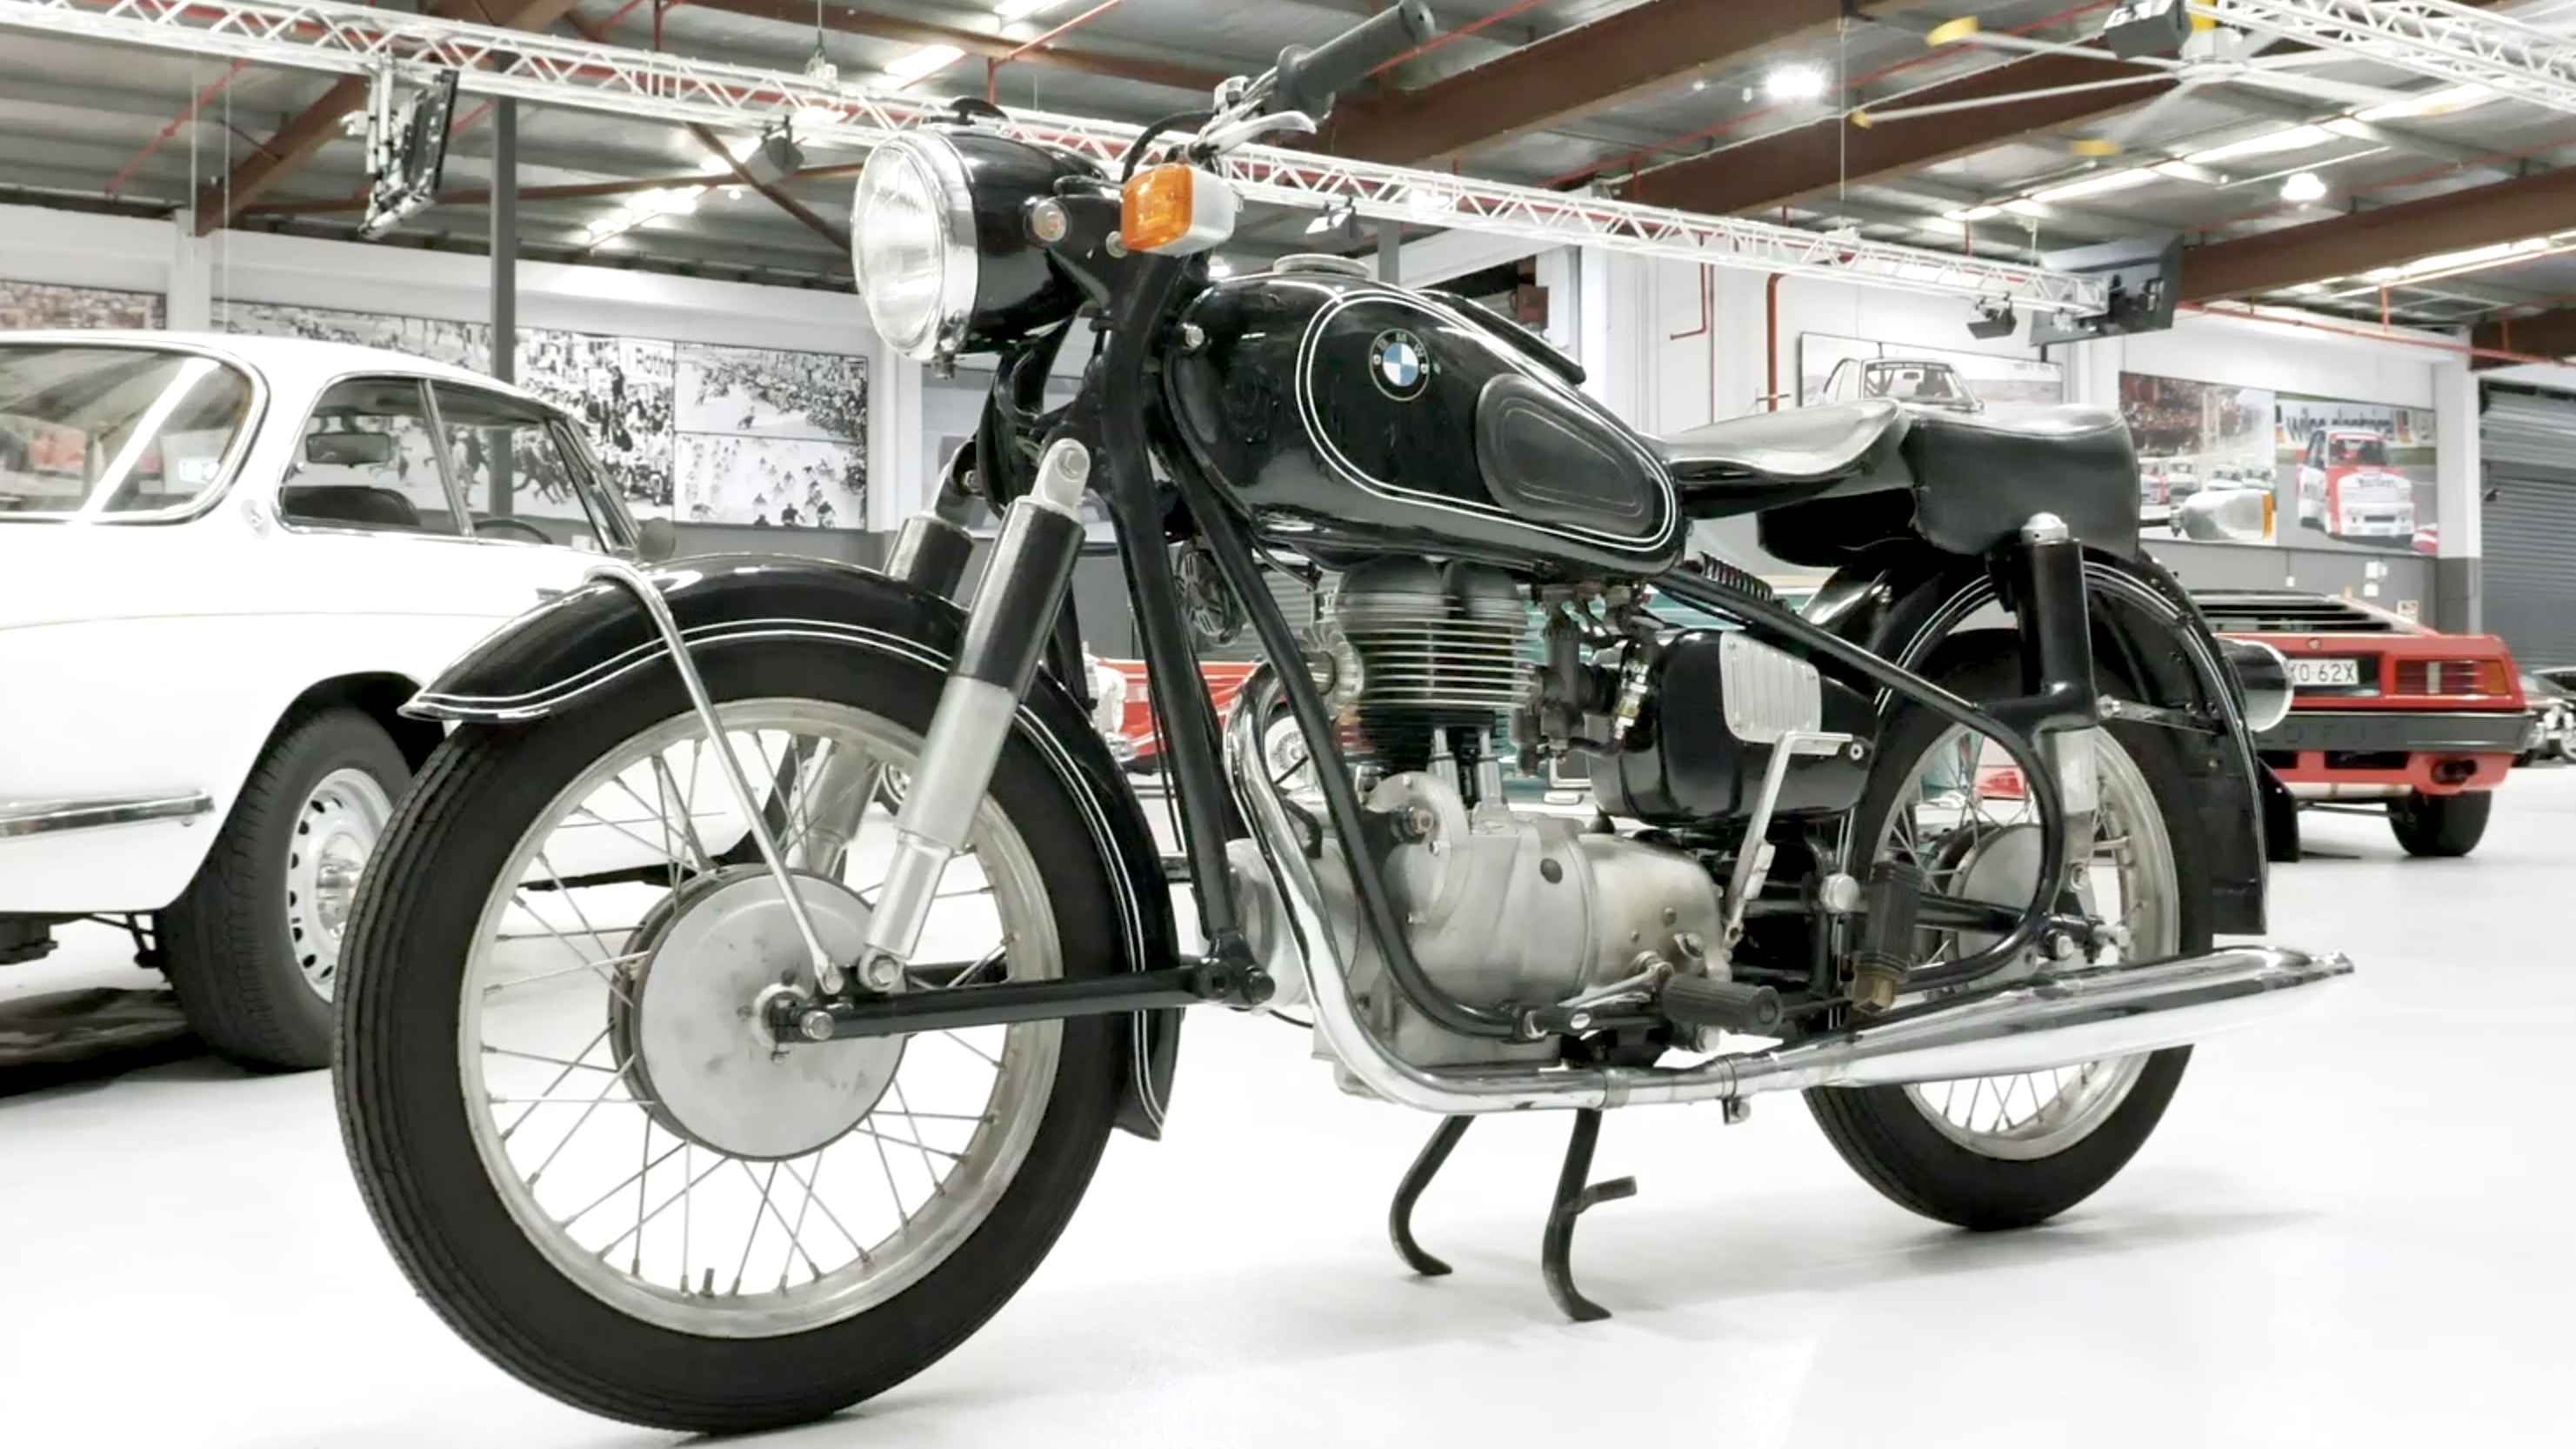 1956 BMW R26 250 Motorcycle - 2021 Shannons Summer Timed Online Auction